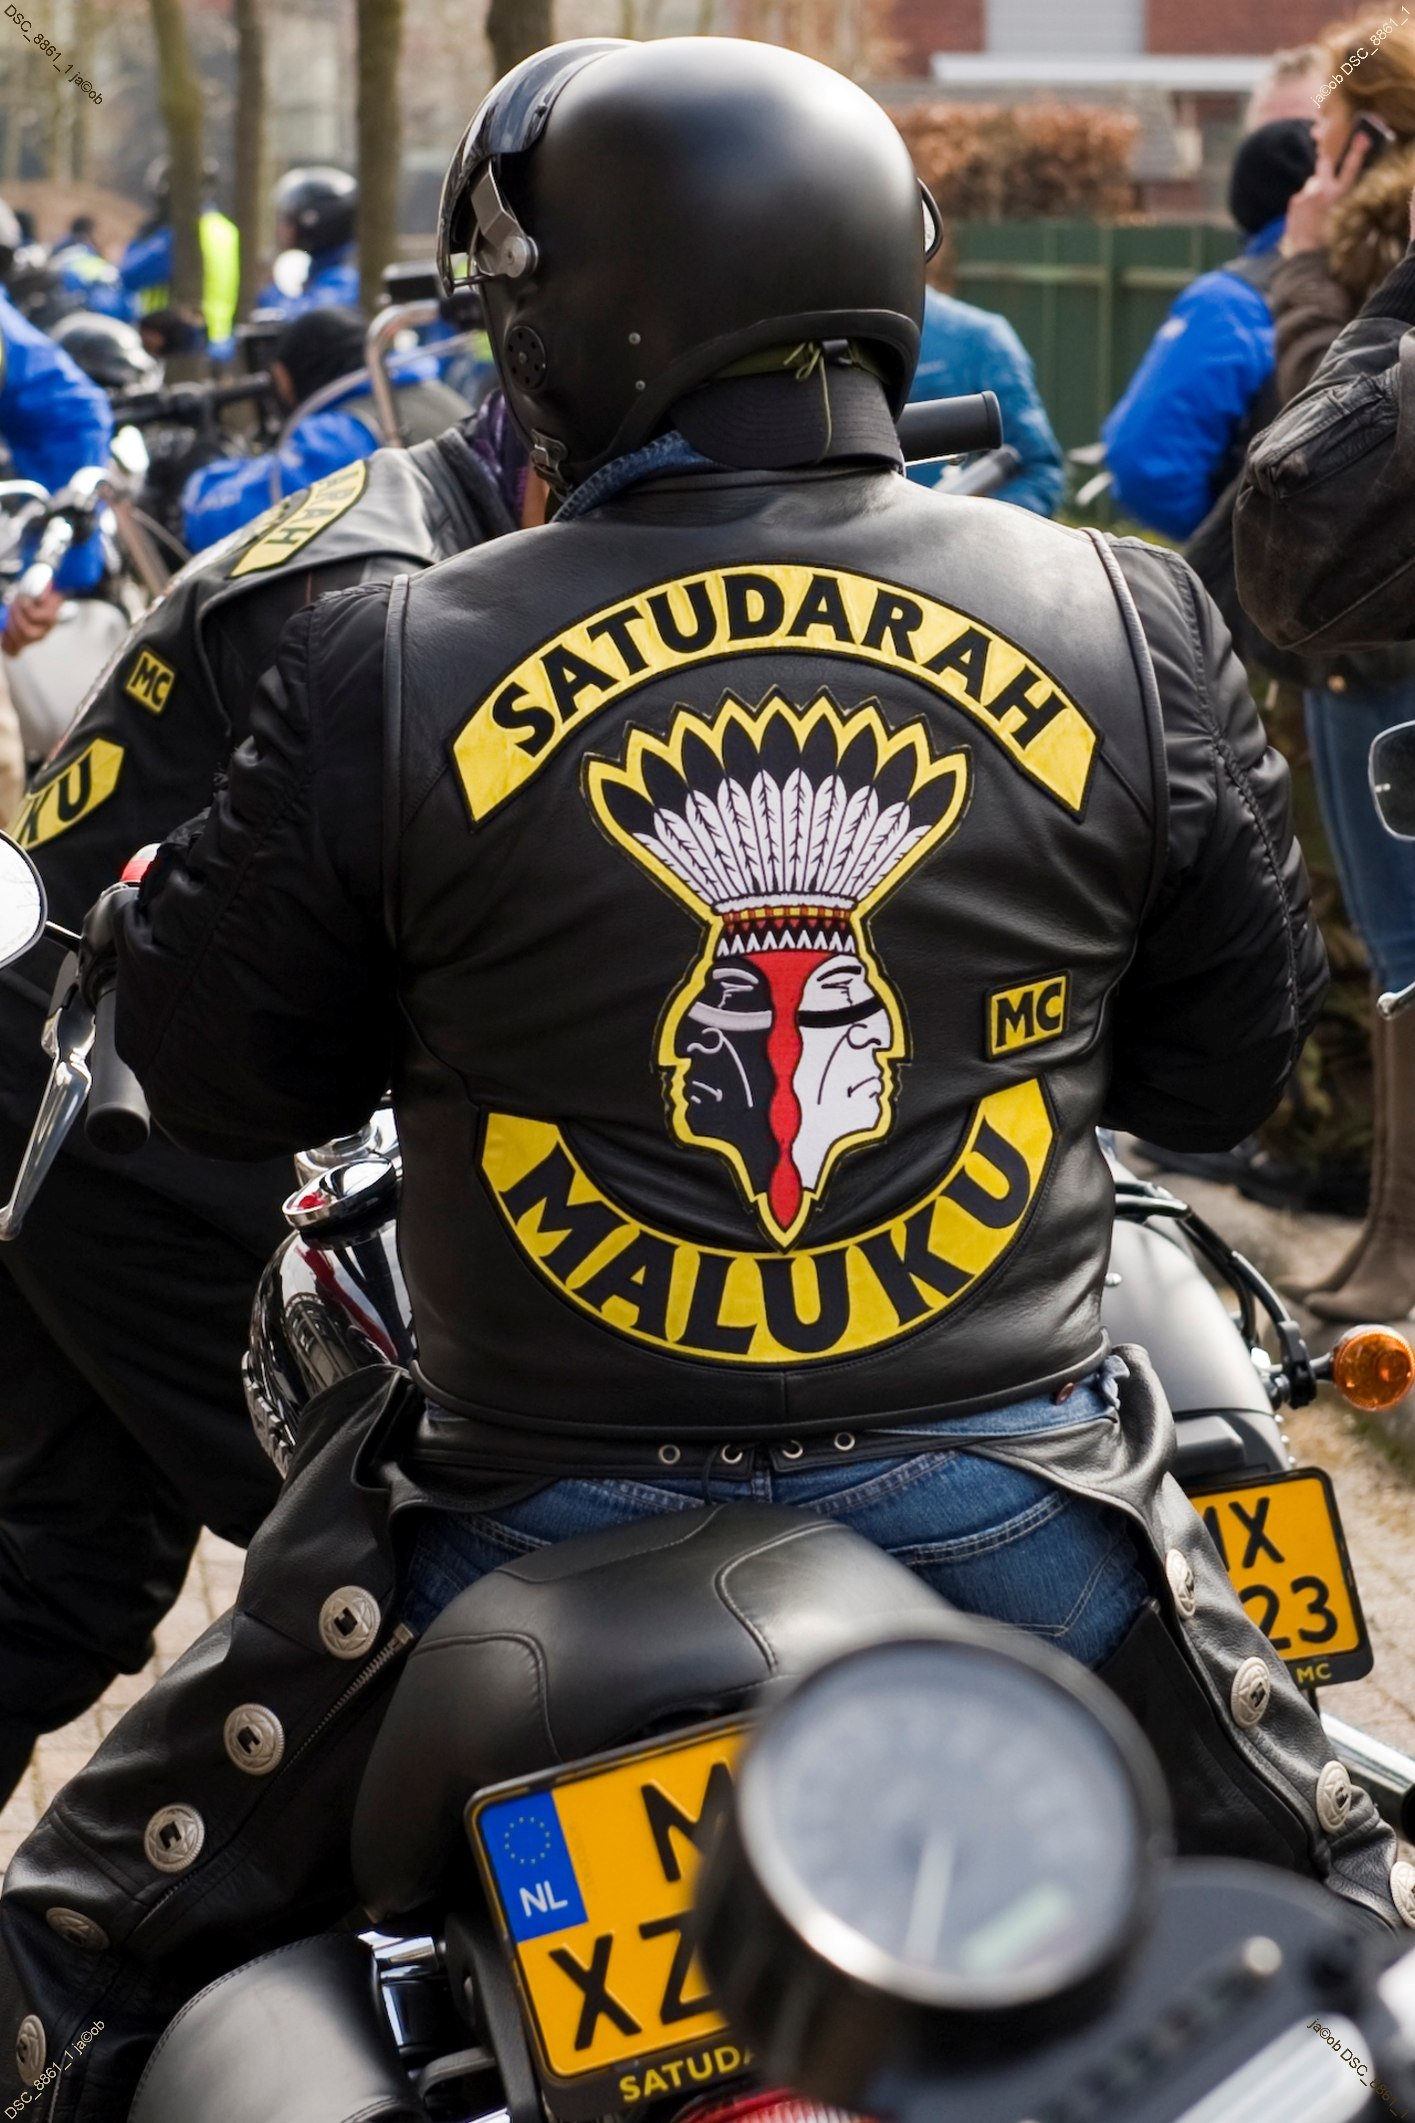 Satudarah - The complete information and online sale with free